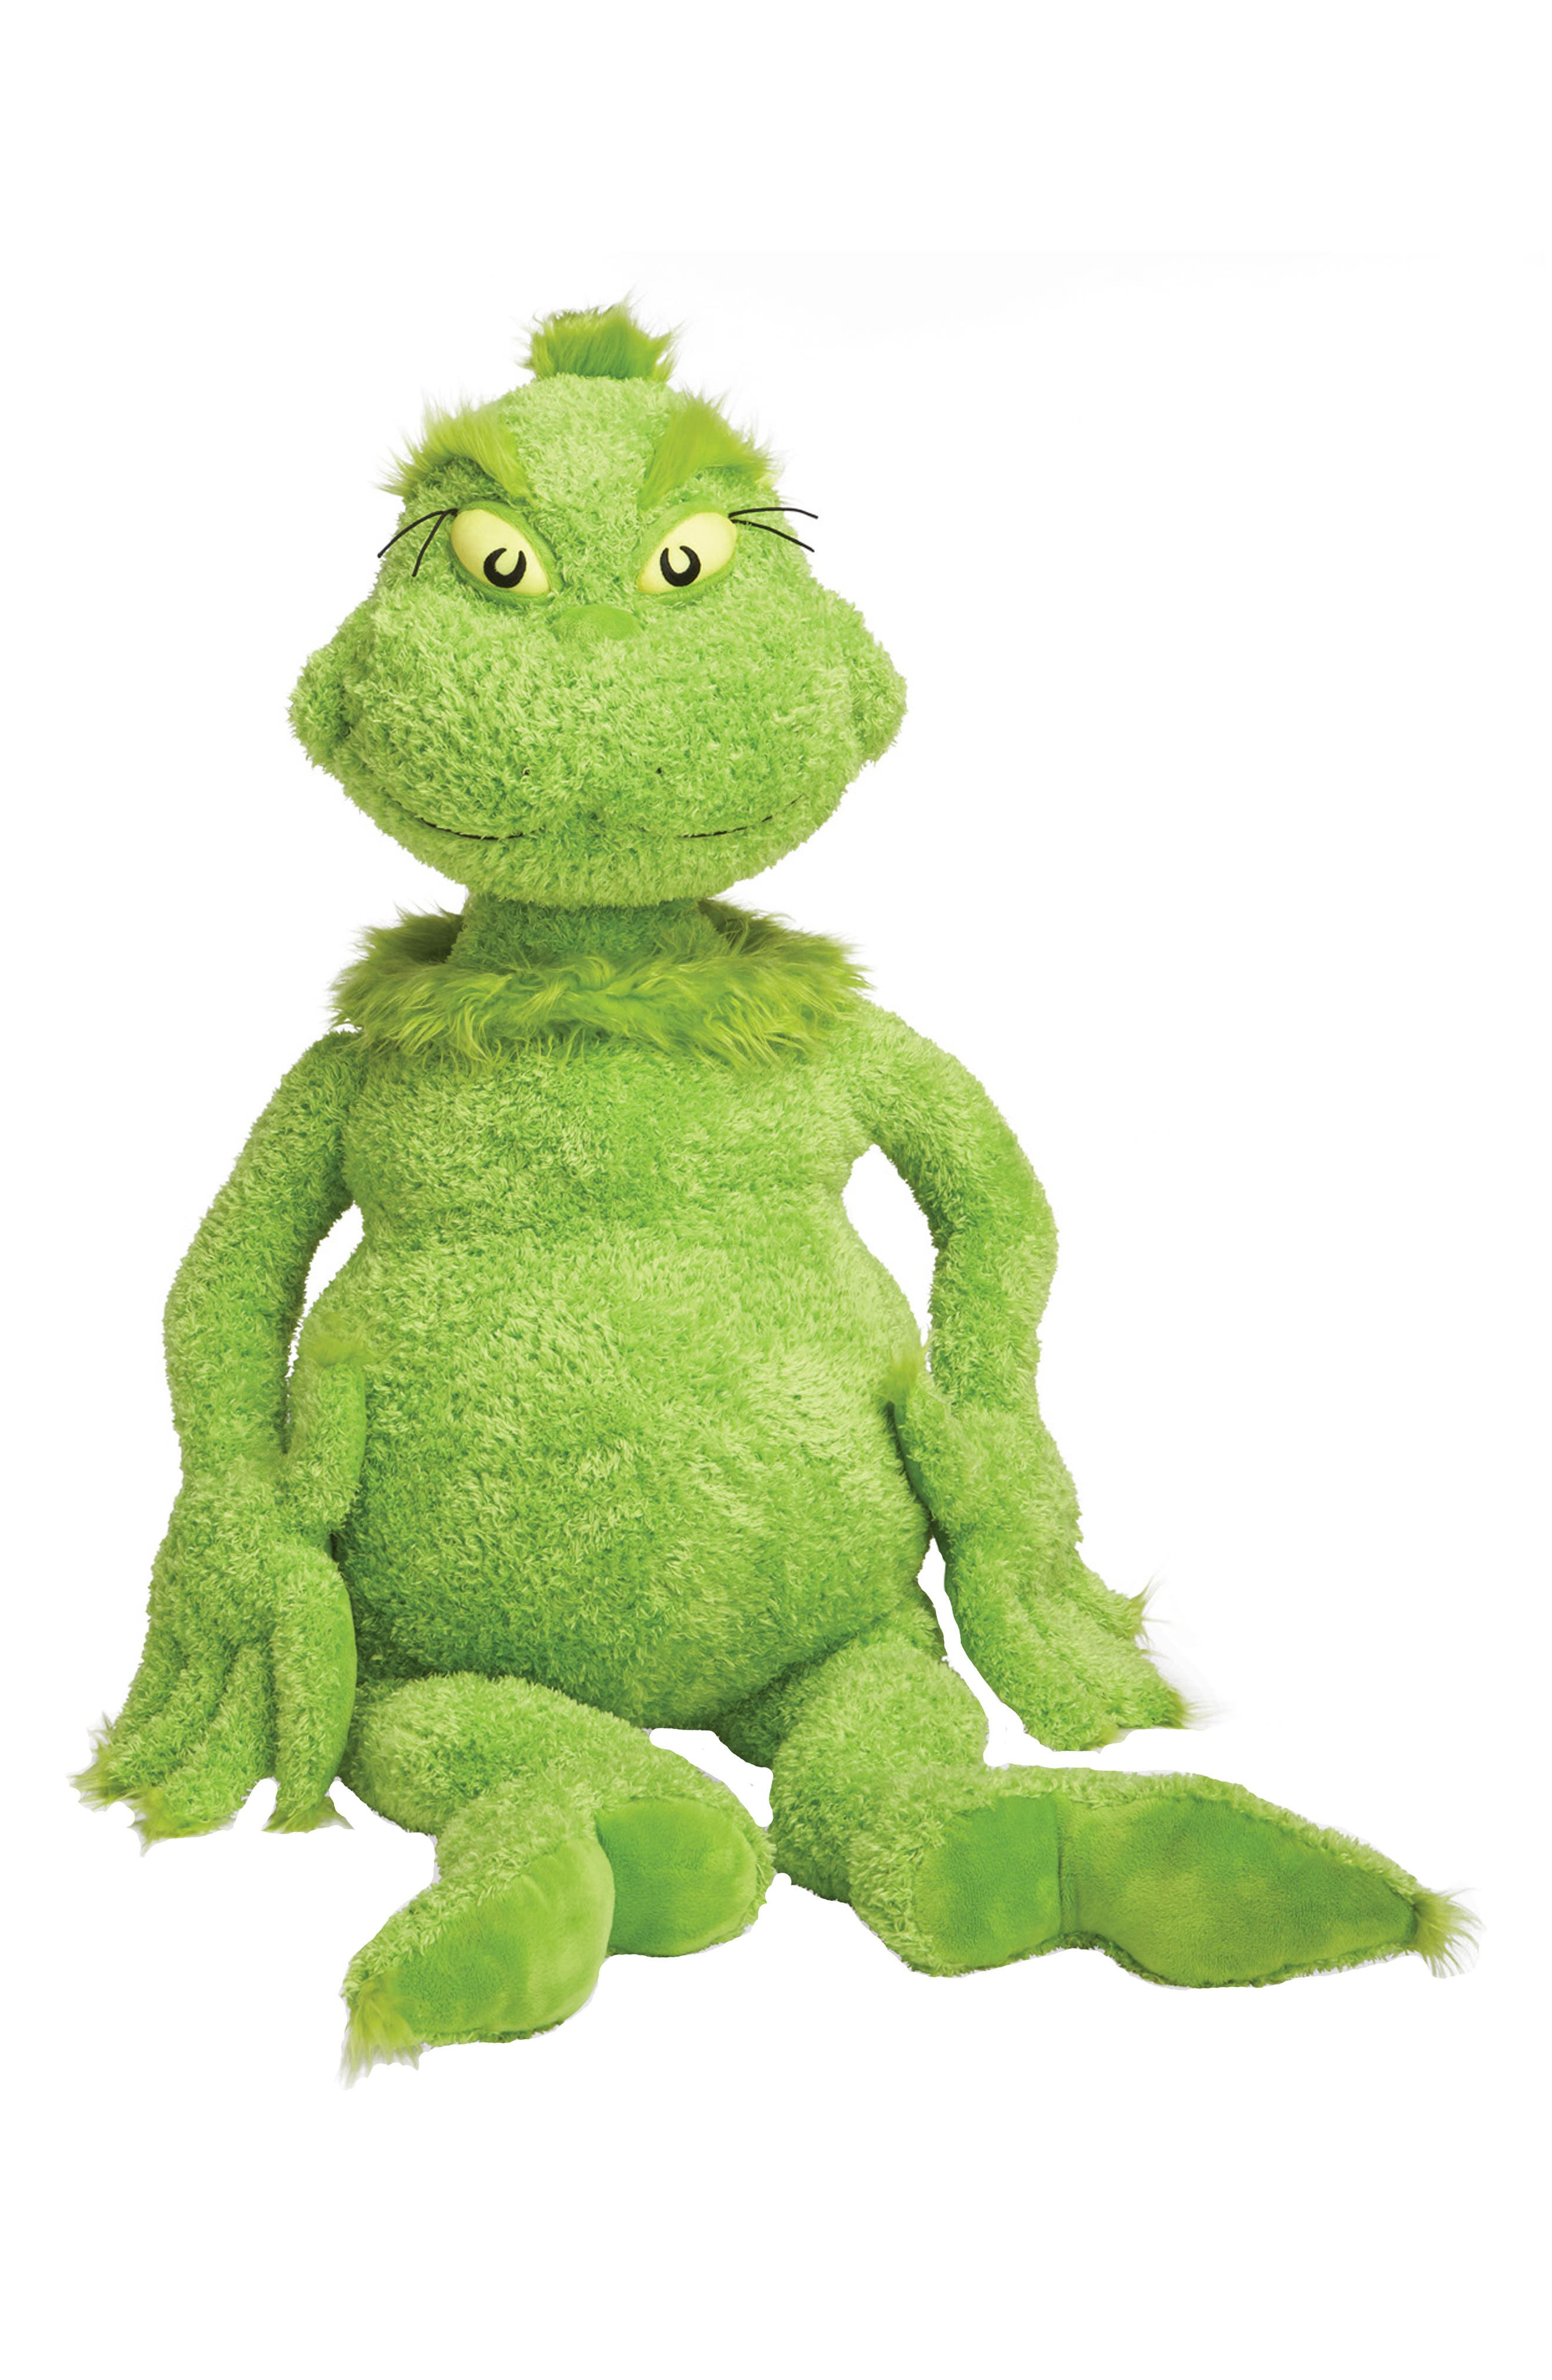 Dr. Seuss -The Grinch Stuffed Toy,                             Main thumbnail 1, color,                             300